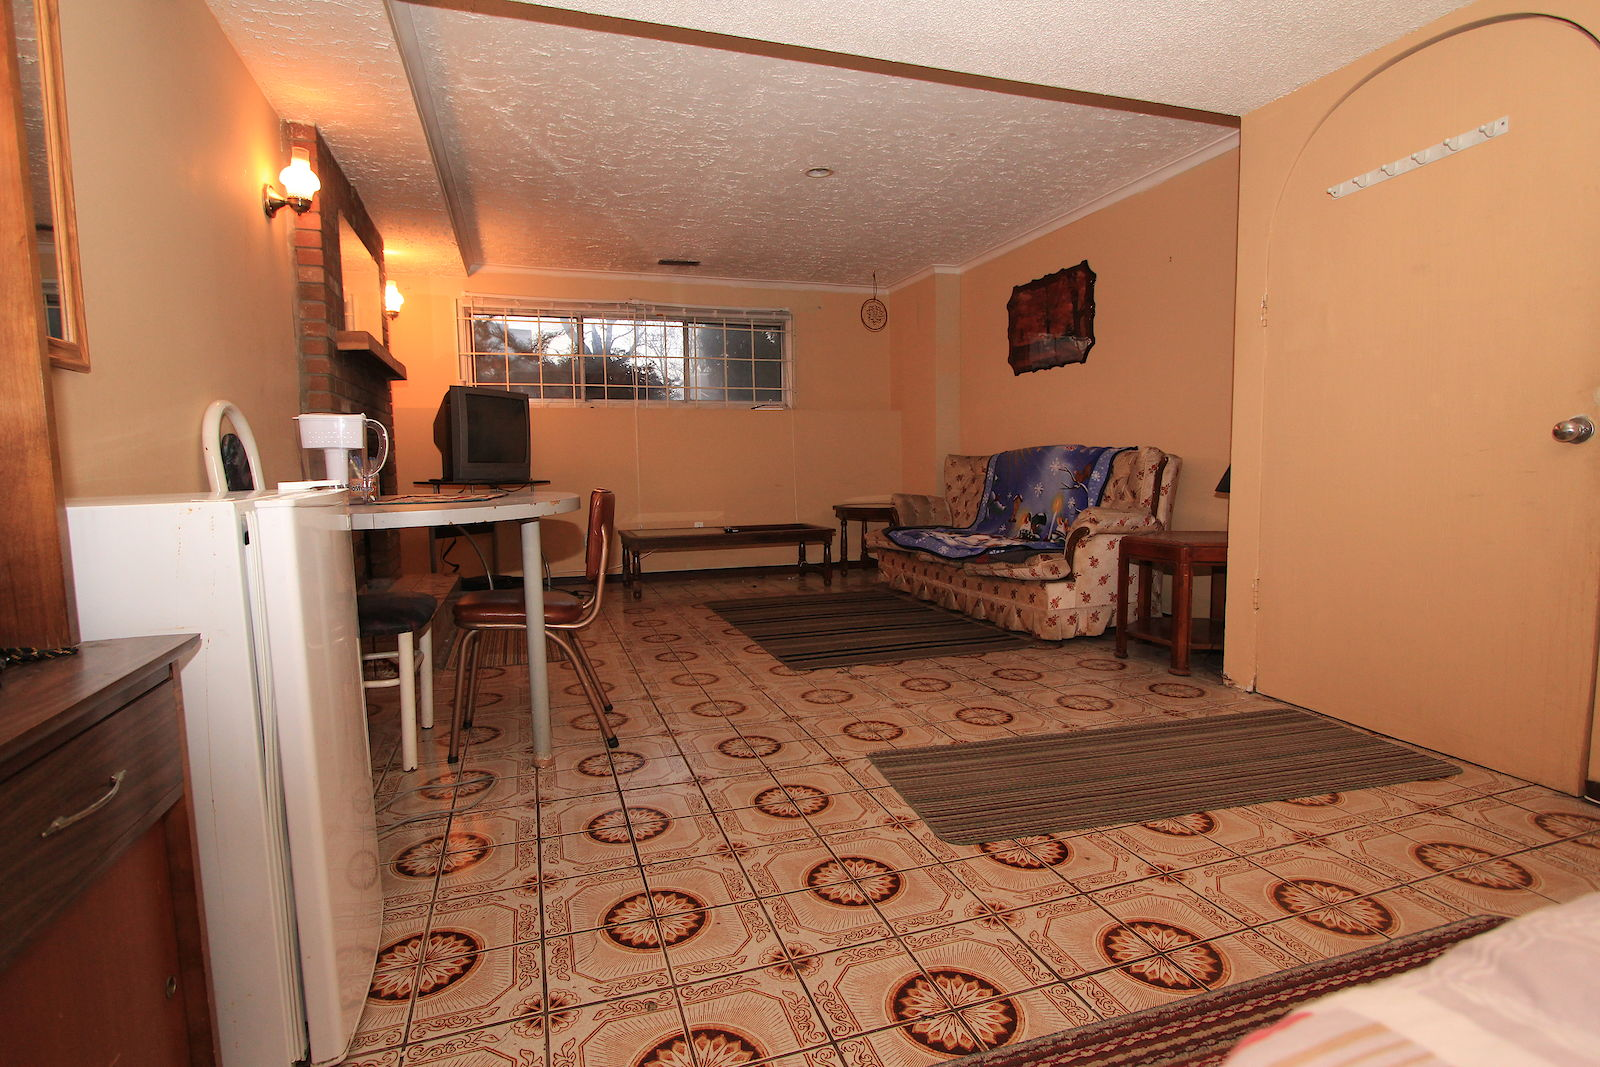 calgary shared for rent rundle ne furnished room in basement for